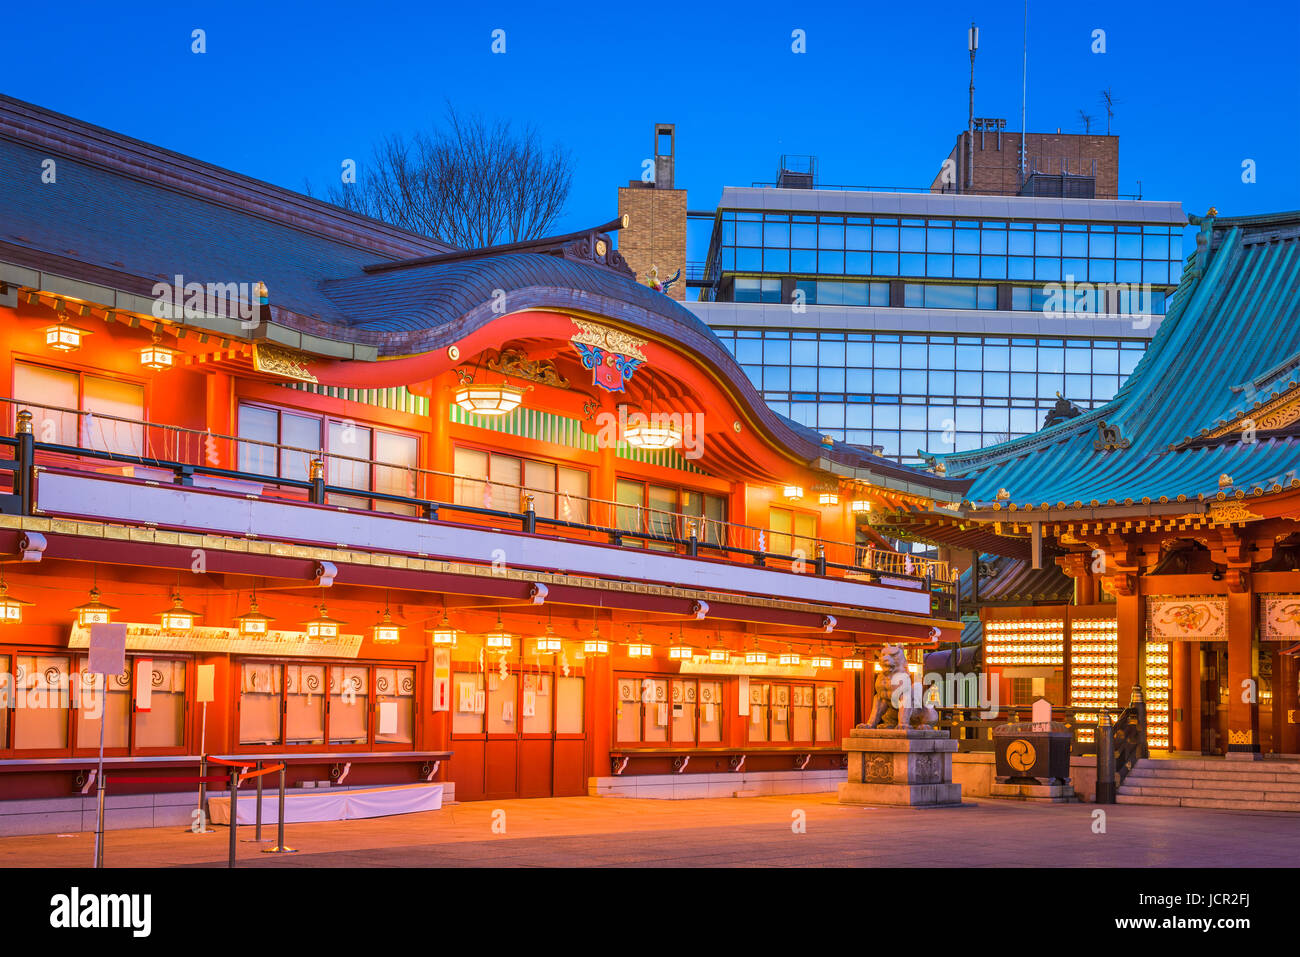 Tokyo, Japan at Kanda Shrine's main gate. - Stock Image